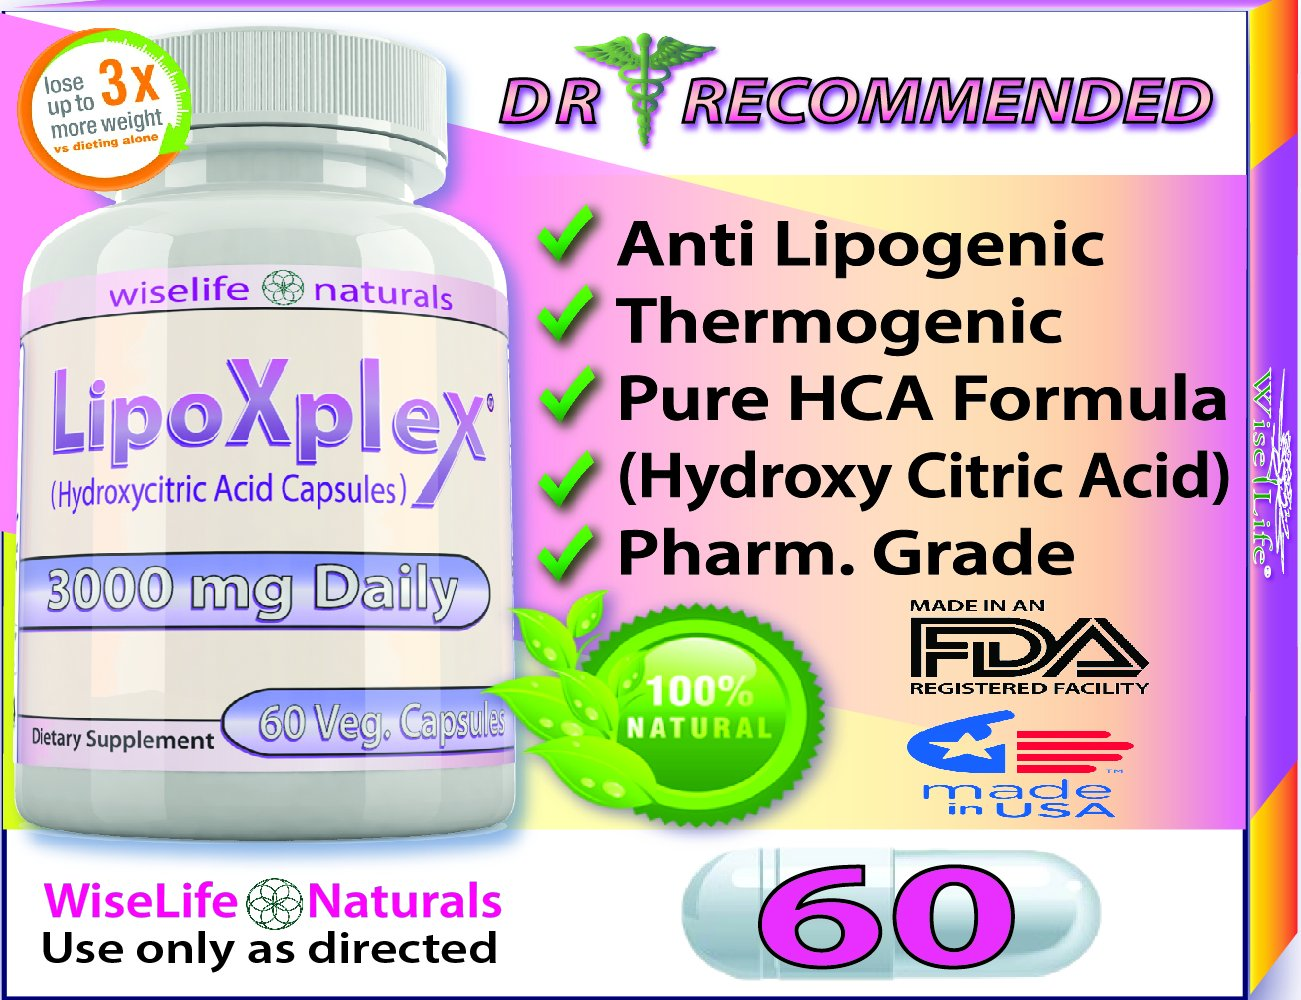 LipoXplex Dr. Recommended Max Strength Weight Loss, Metabolism Booster Fat Burning Diet PIll That Work for Women as Appetite Suppressant Increase Calorie Burn to Lose Belly Fat Fast Guaranteed Results